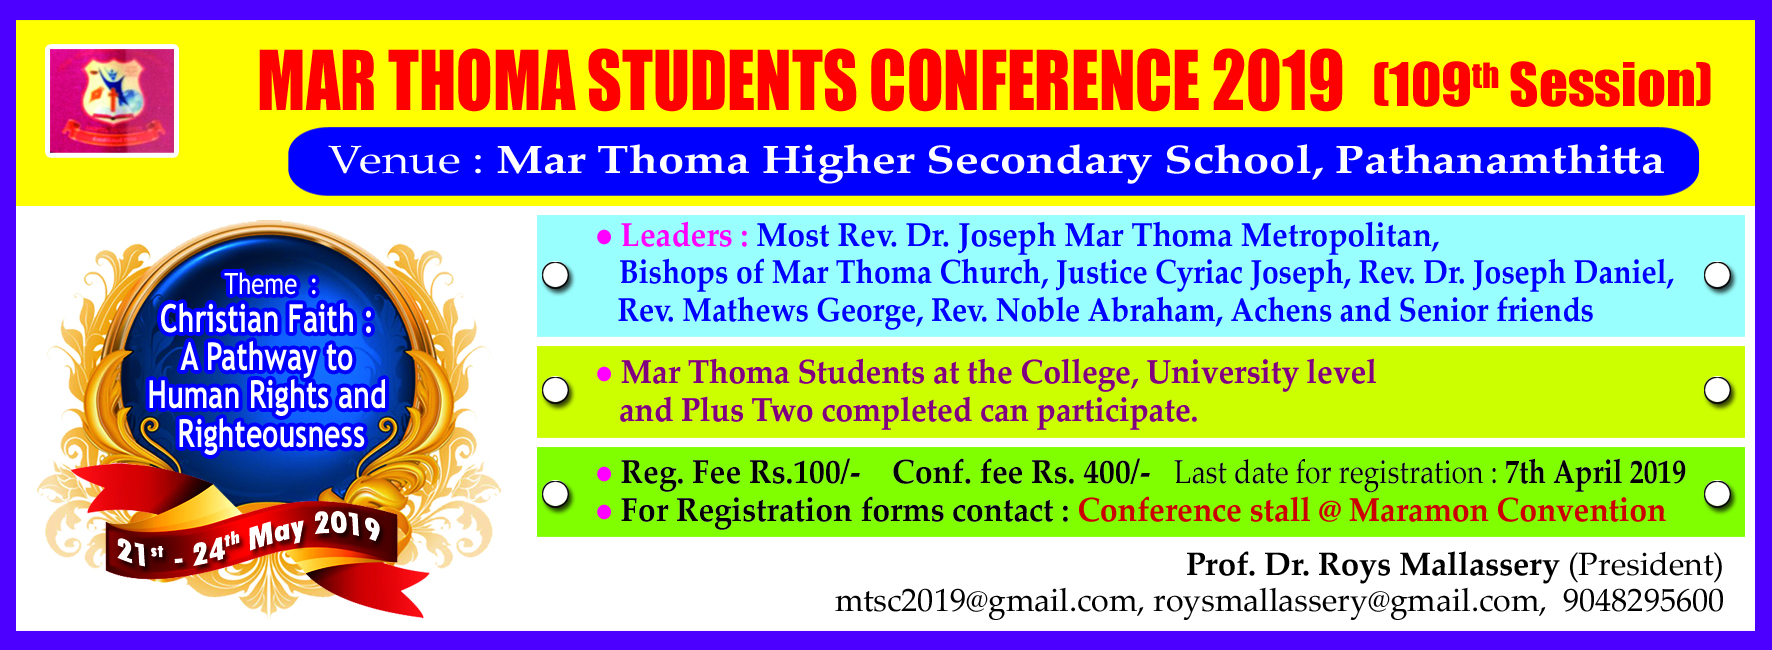 mar-thoma-students-conference